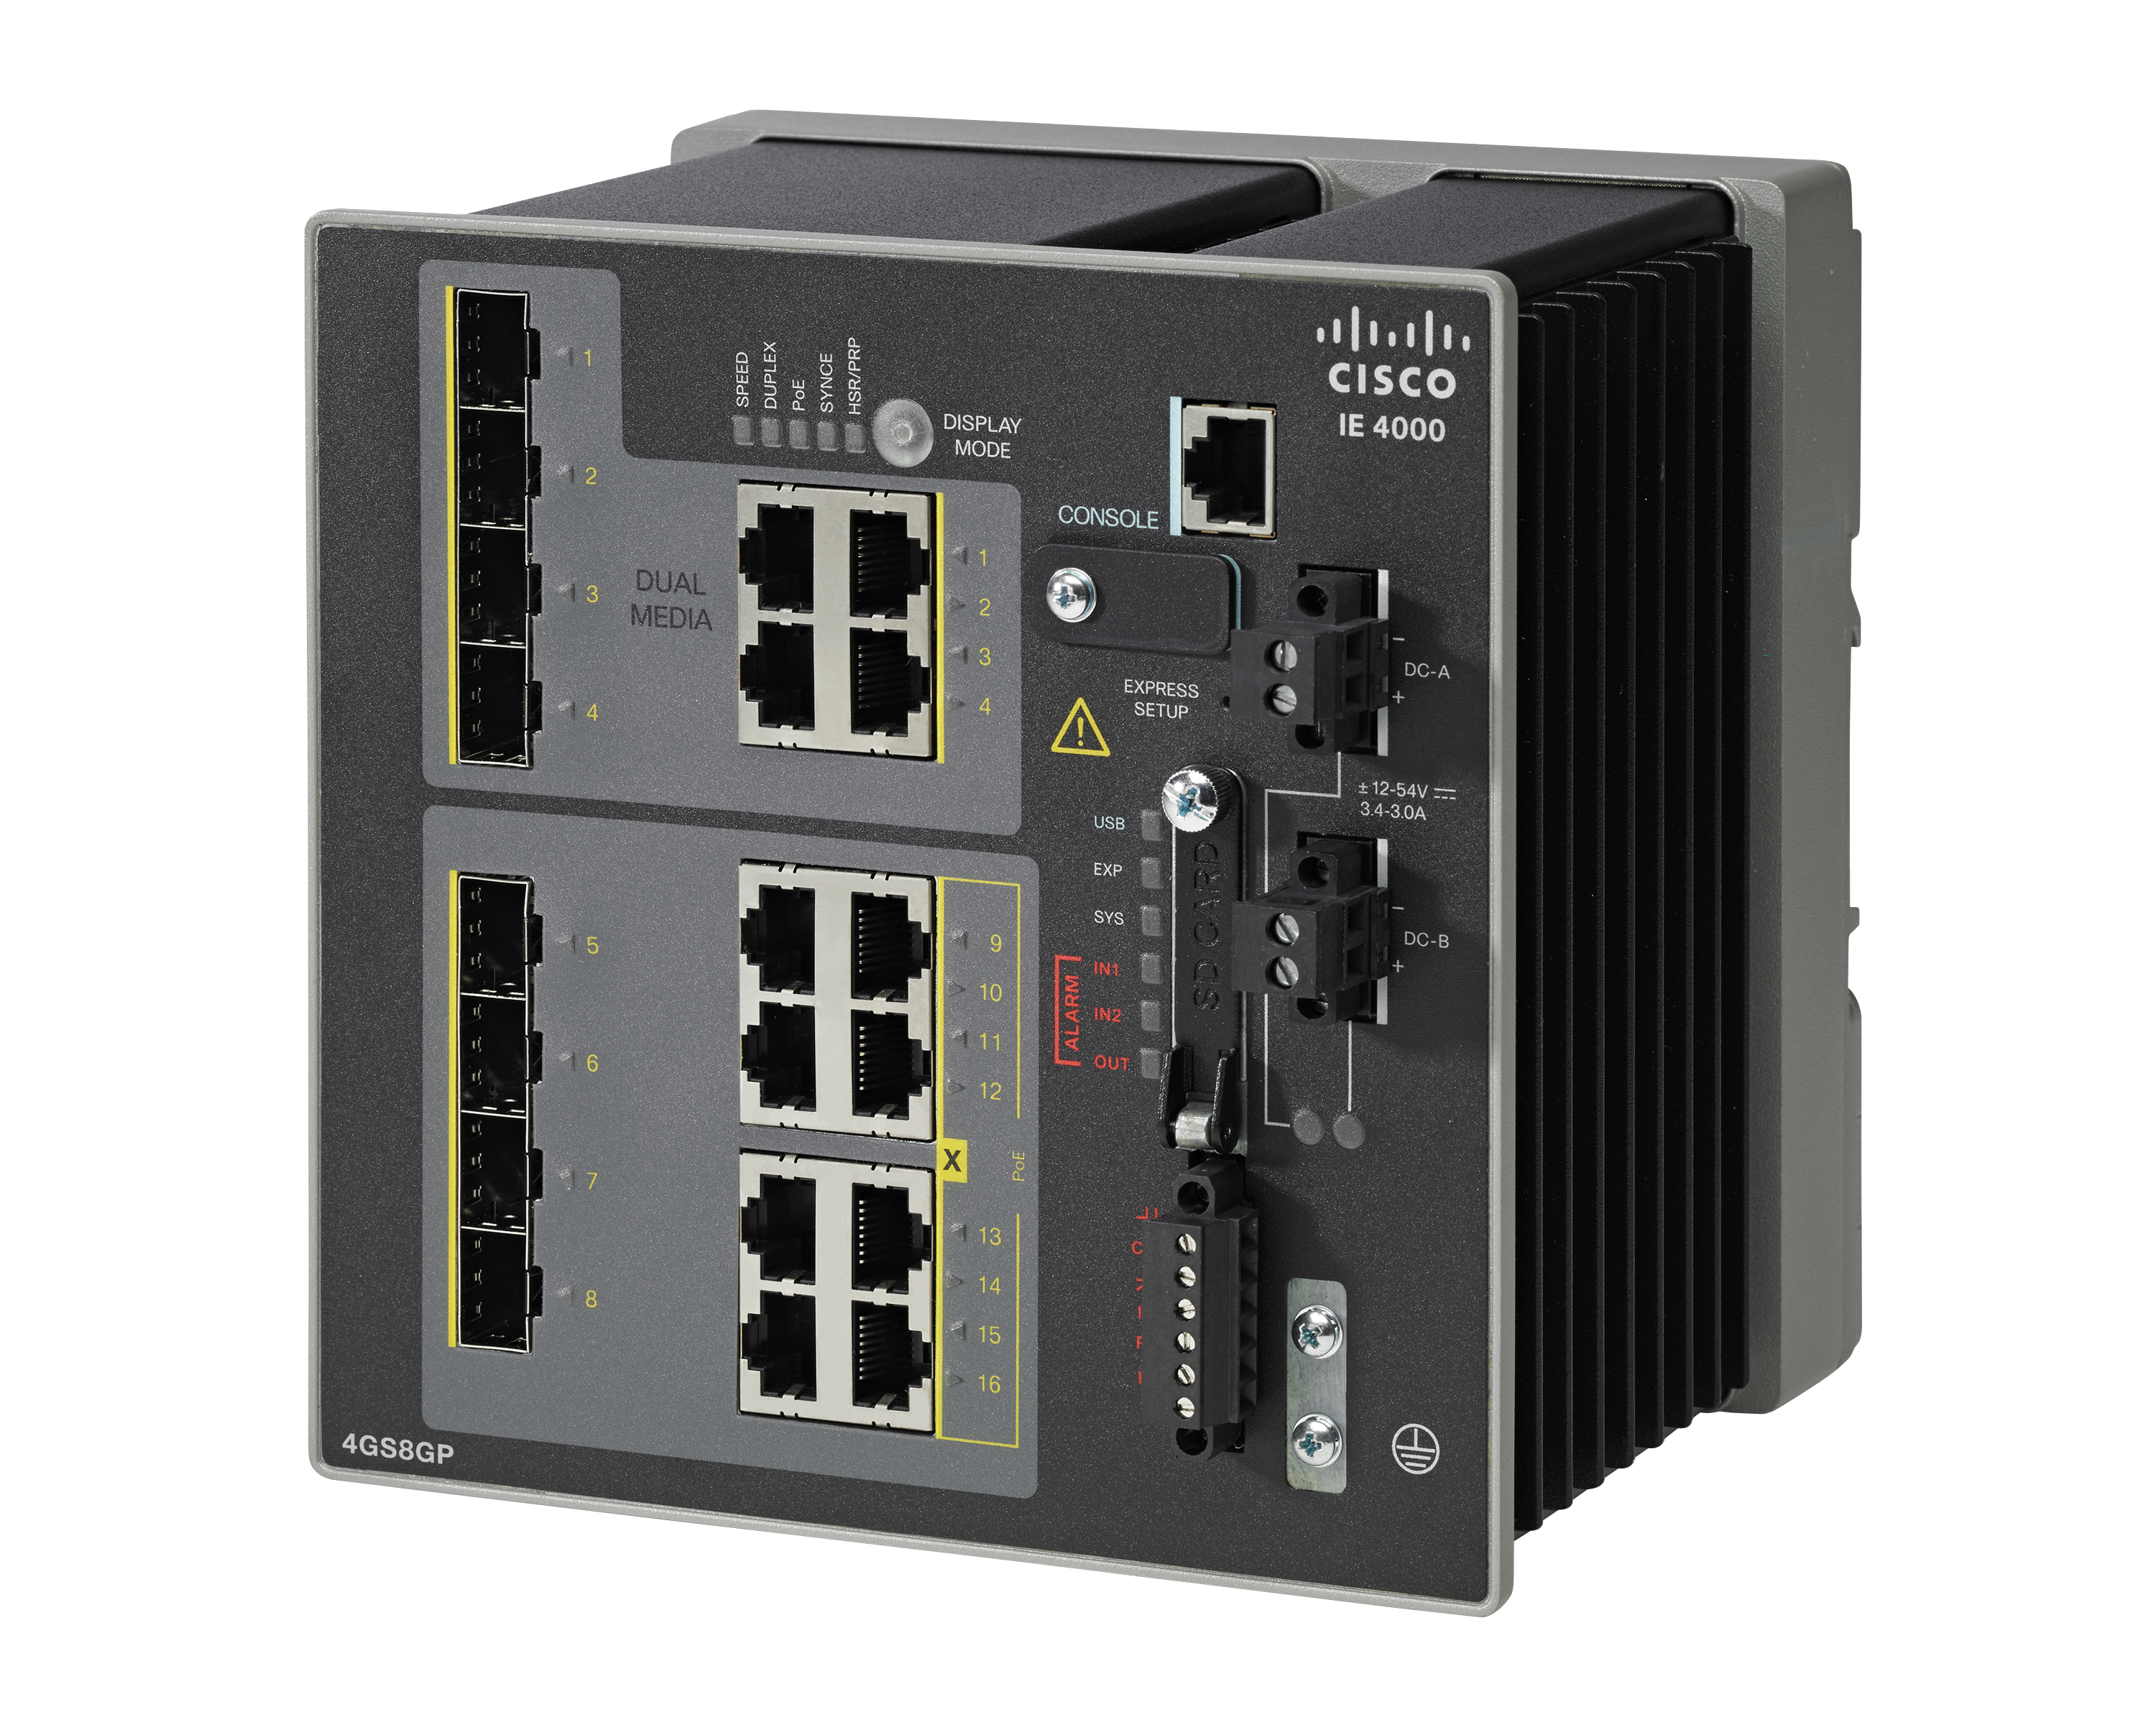 Cisco ie4000